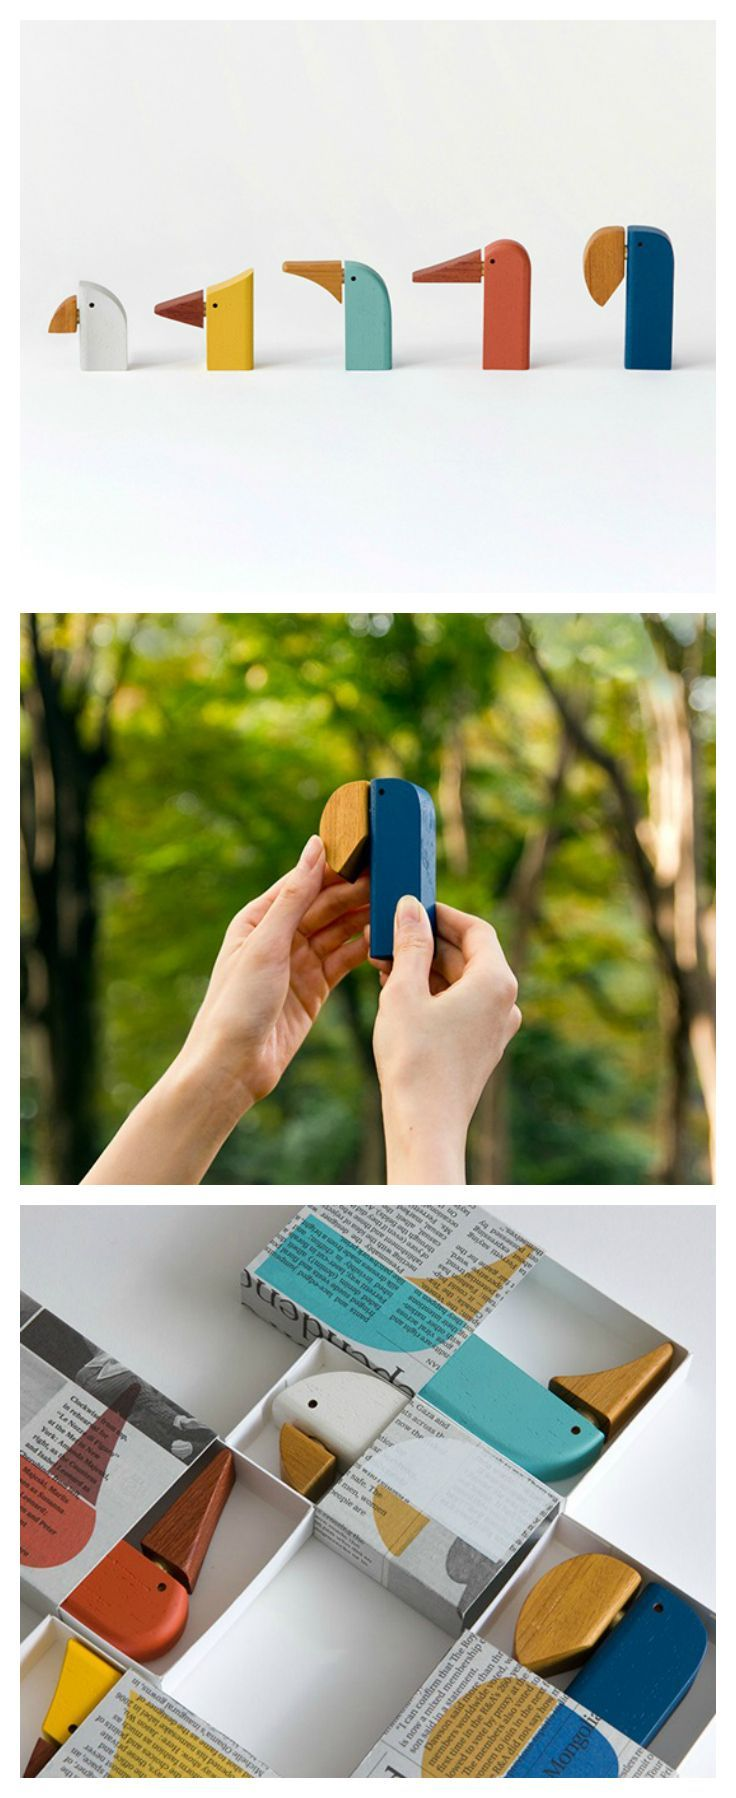 Fun Toys For Grown Ups : B studio playful projects for kids and grown ups bird